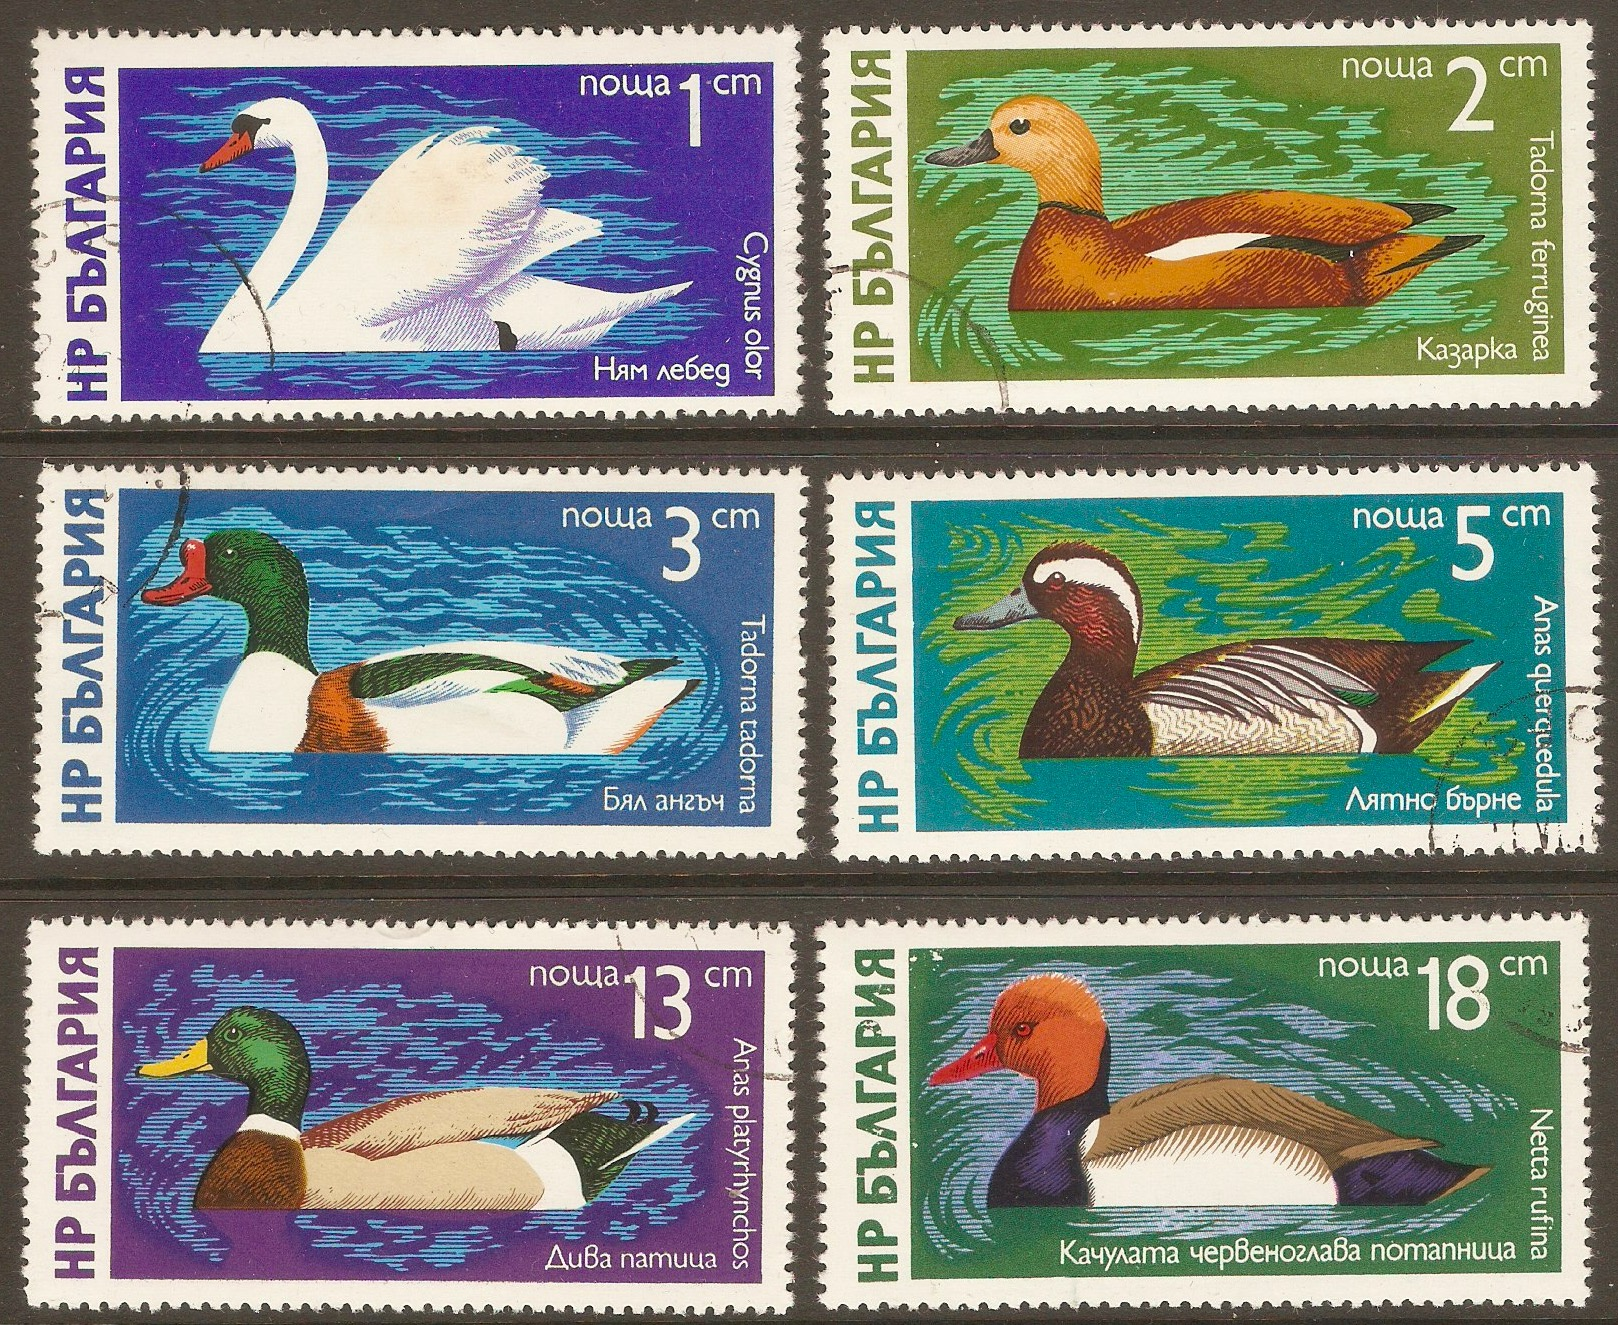 Bulgaria 1976 Waterfowl set. SG2455-SG2460.